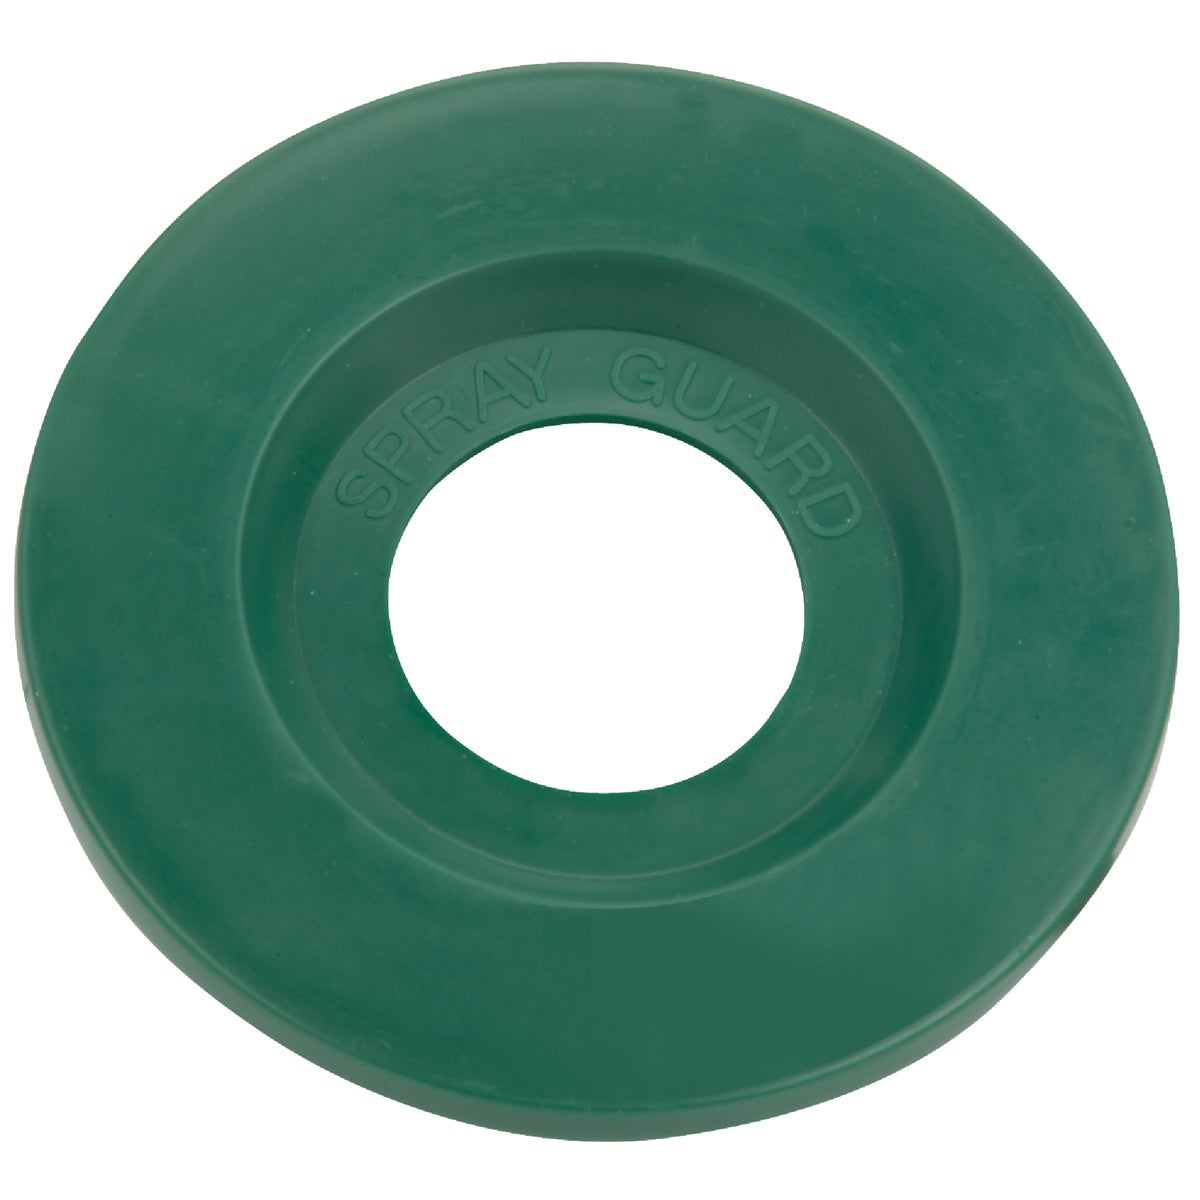 "5"" PLASTIC SPRAY GUARD - 53028 by Orbit"